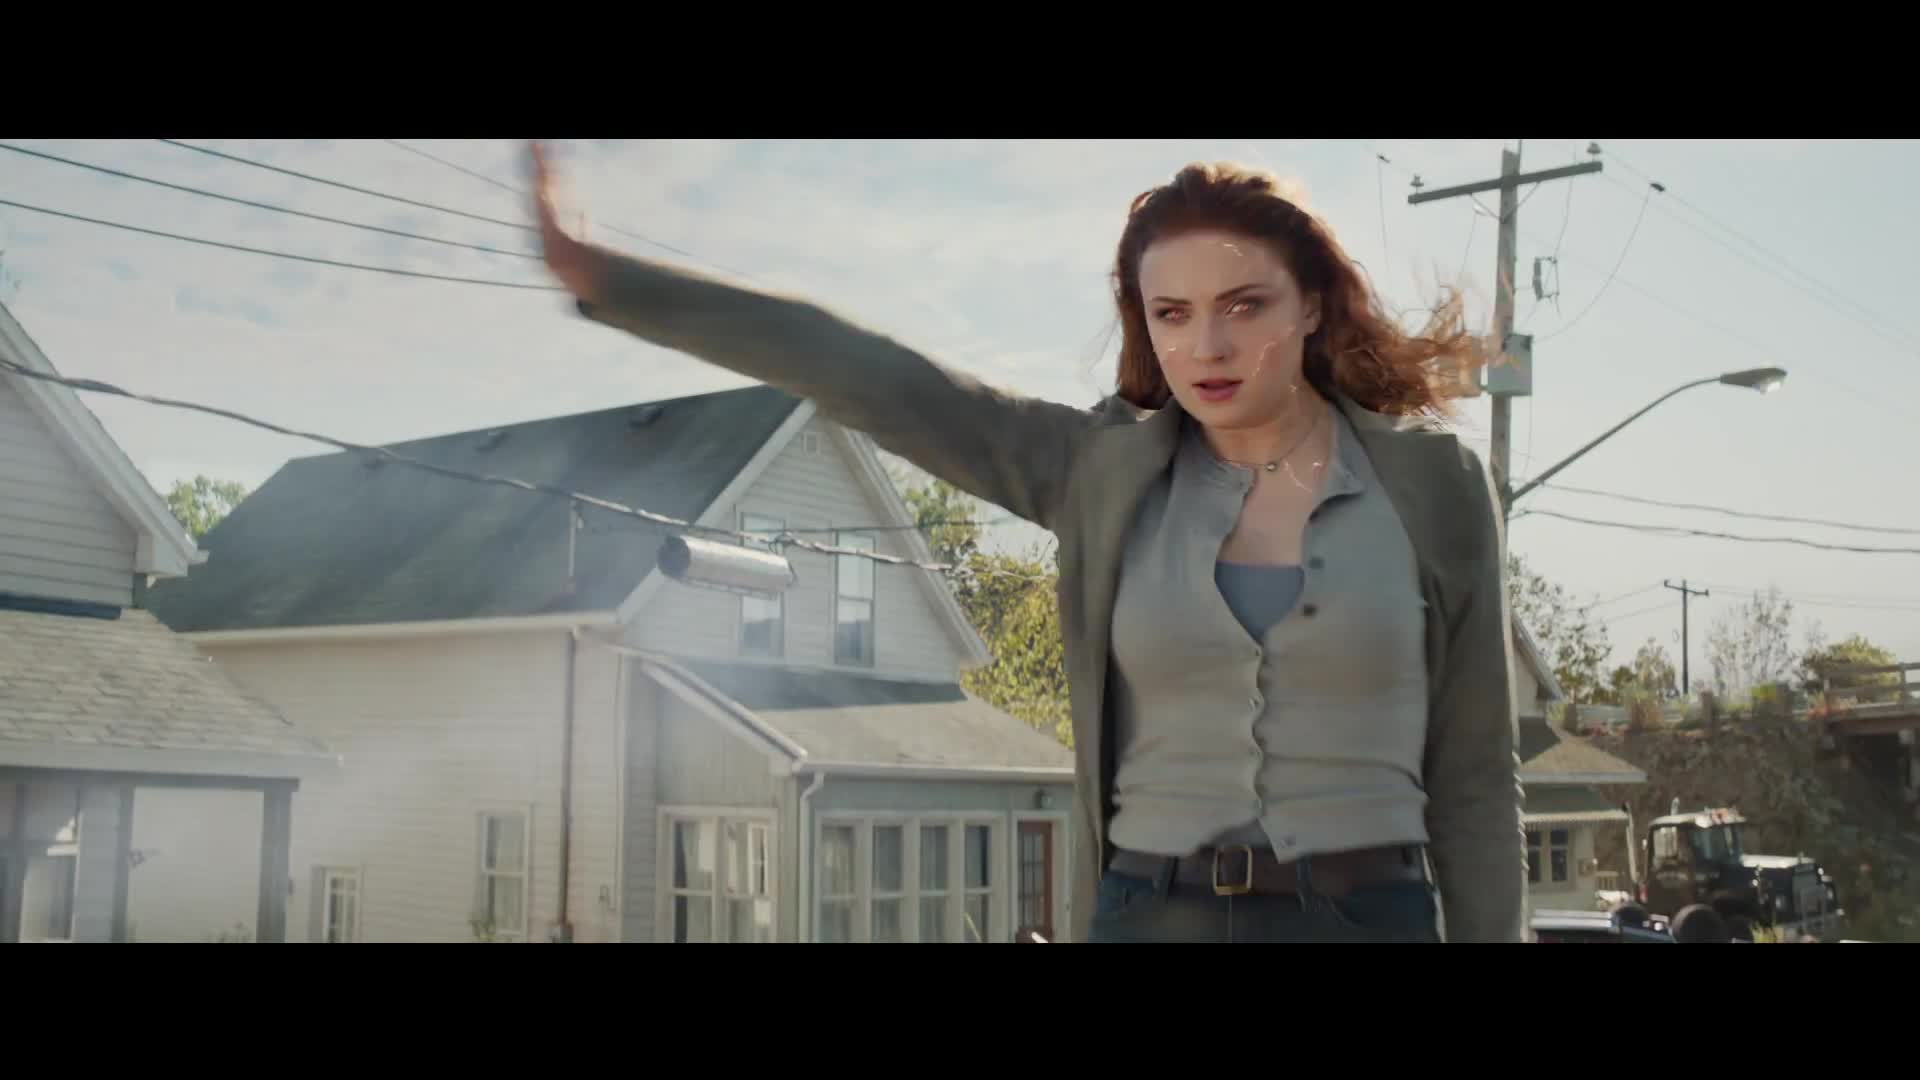 Trailer, Kinofilm, Kino, Marvel, 20th Century Fox, X-Men, Dark Phoenix, X-Men: Dark Phoenix